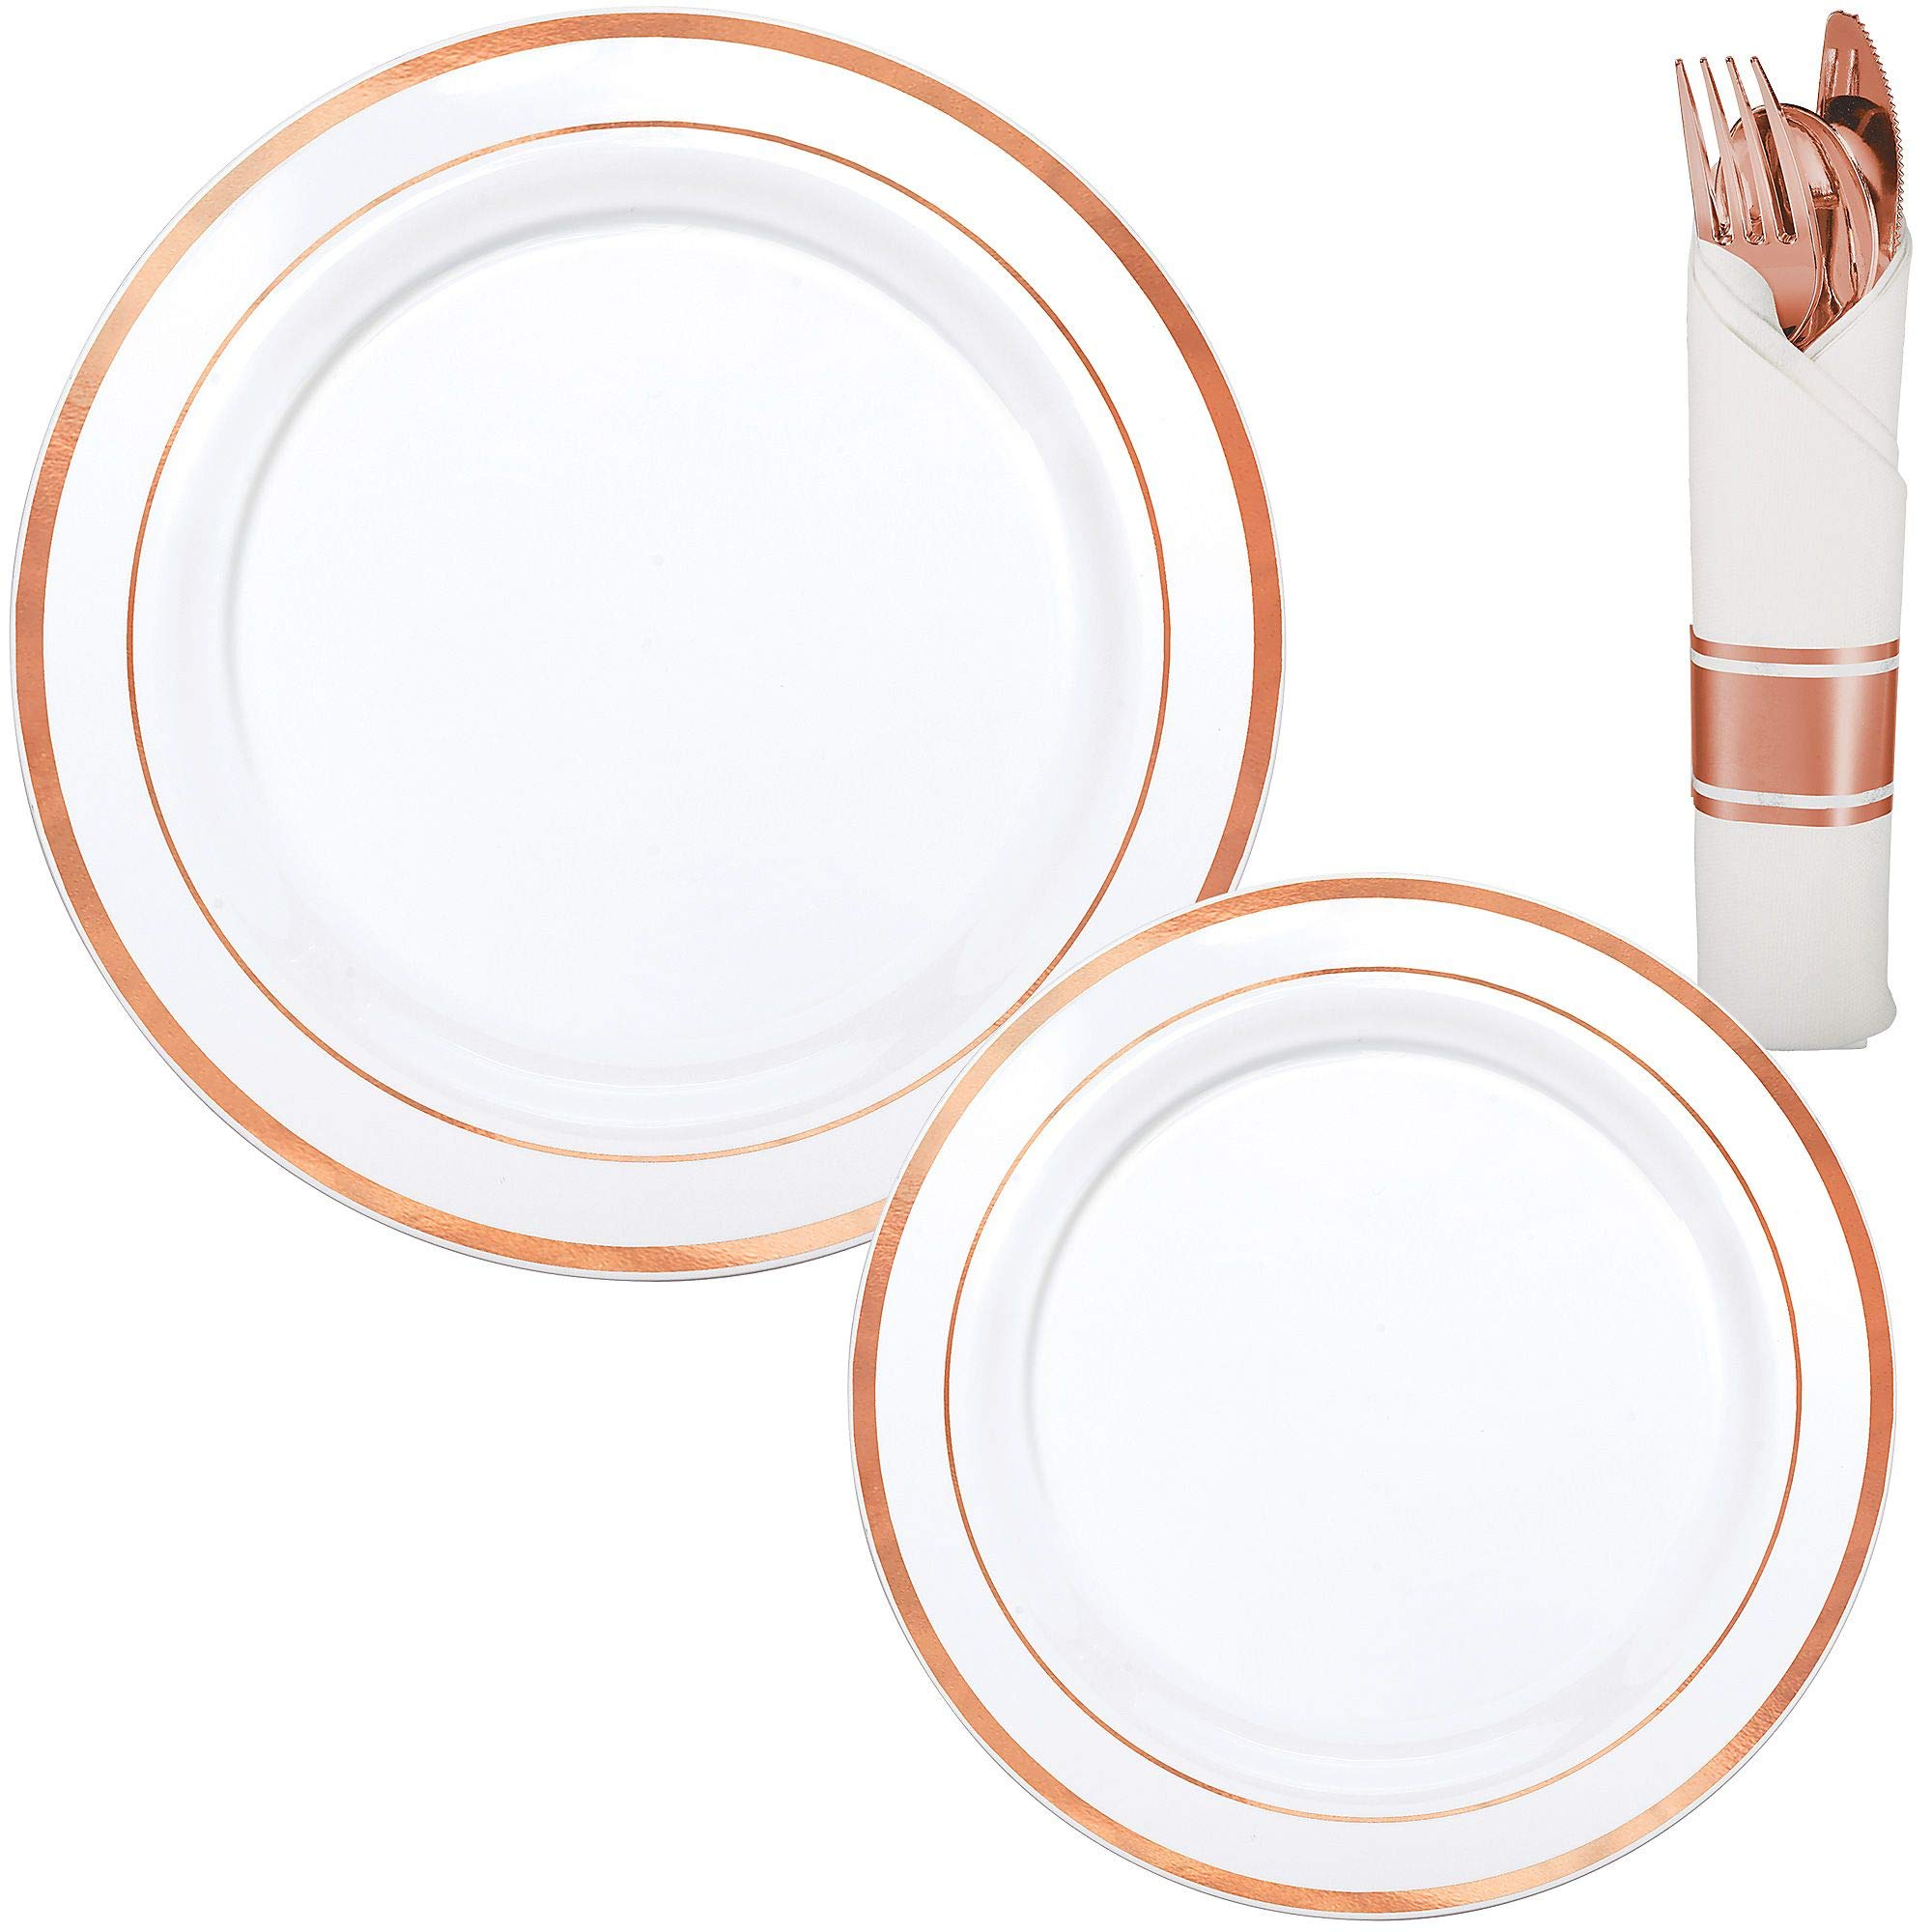 Party City White Rose Gold-Trimmed Premium Tableware Kit for 40 Guests, Includes Rolled Cutlery Sets by Party City (Image #1)